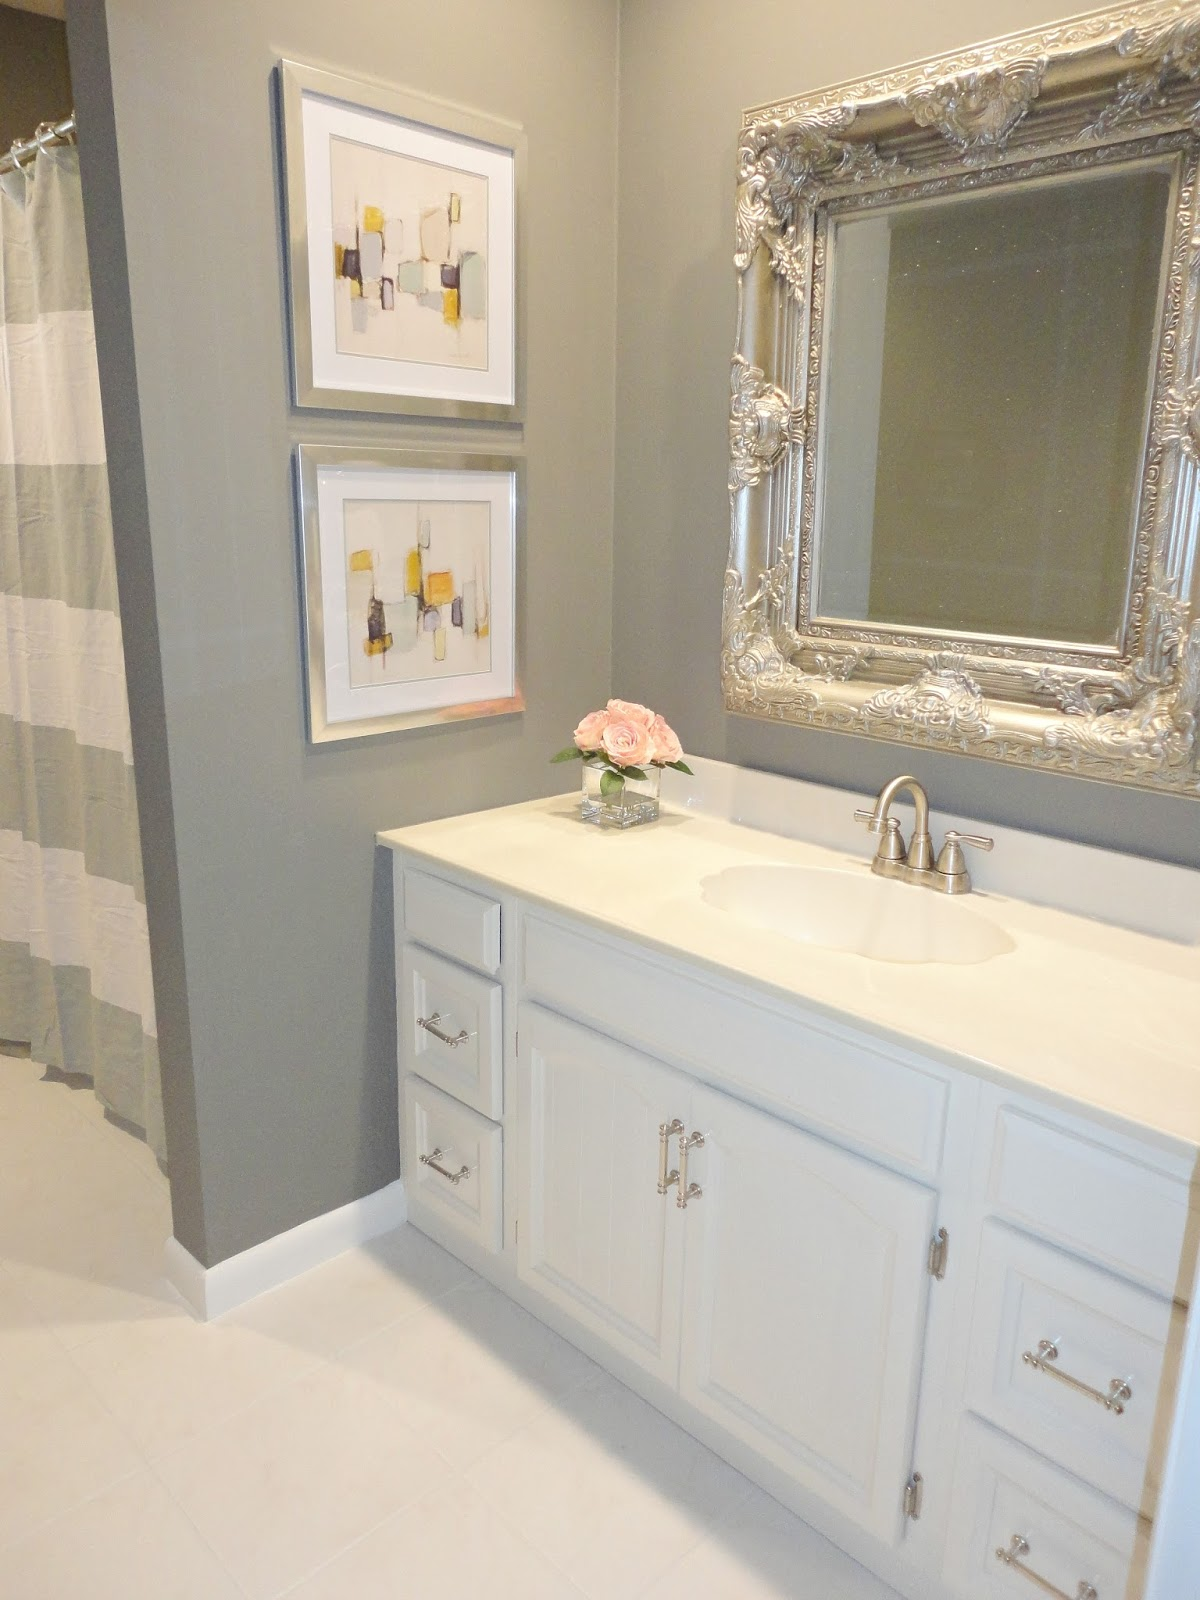 Cool DIY Bathroom Remodel on a Budget